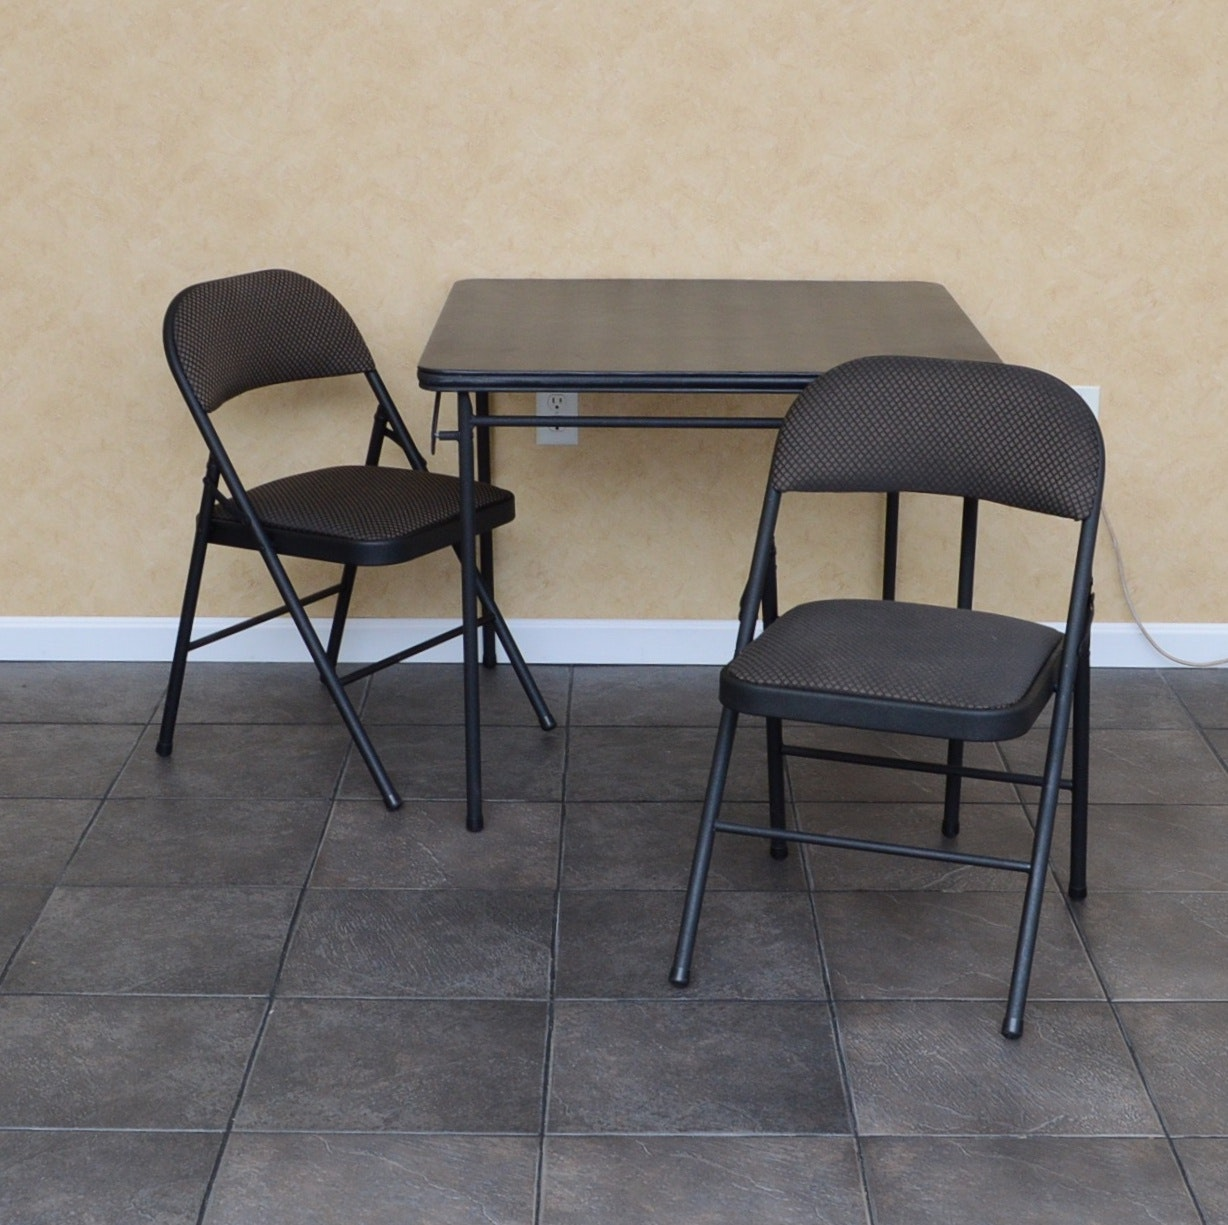 Cosco Folding Card Table and Two Folding Chairs